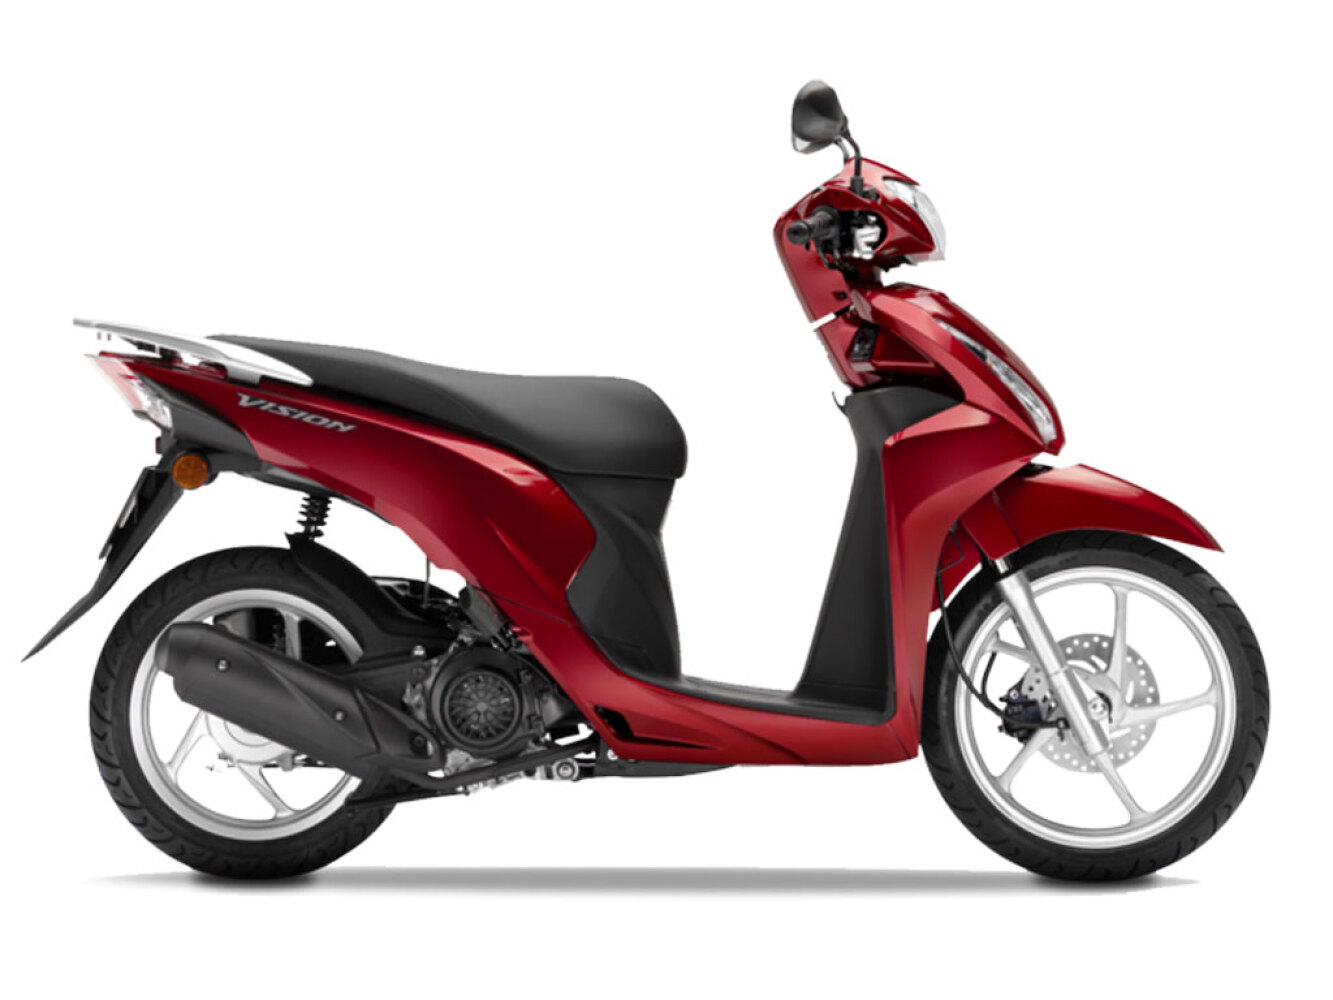 New Honda Vision Nsc110 For Sale Vertu Motor Scooters